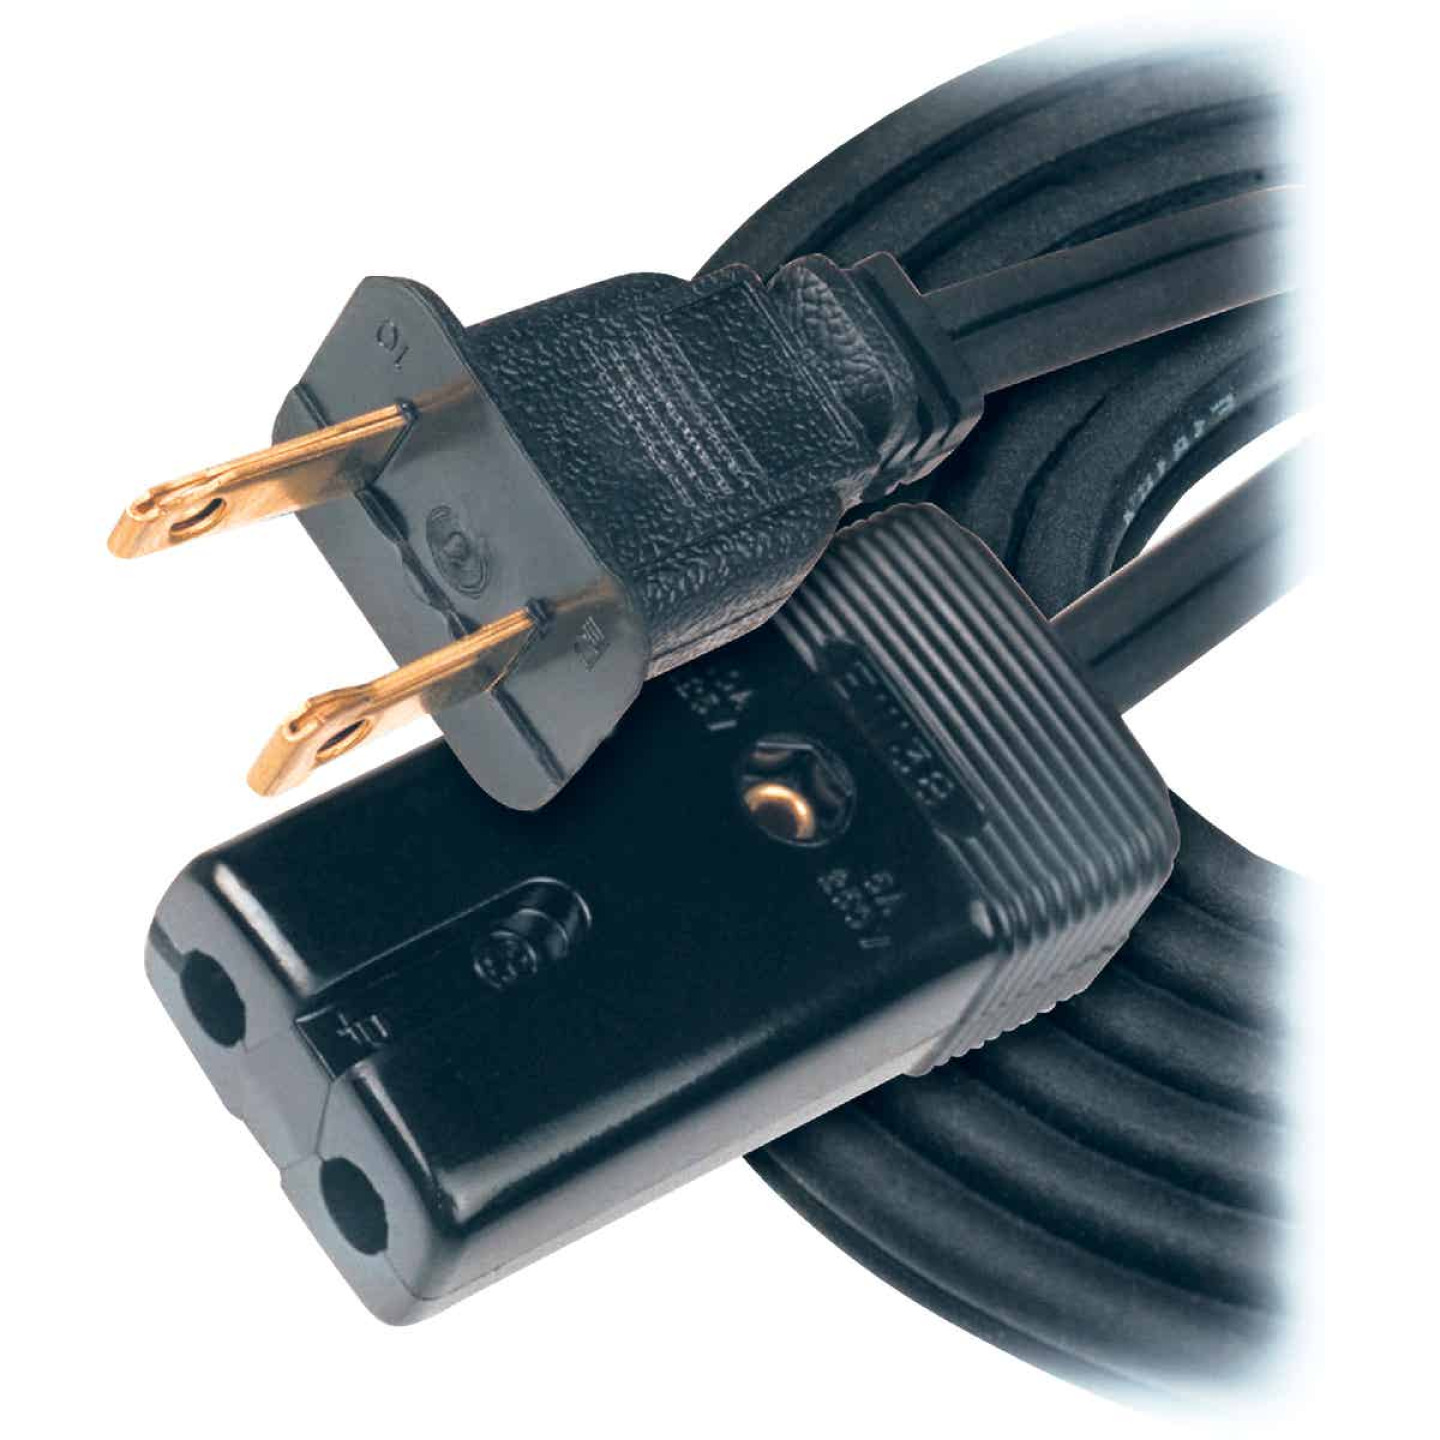 Woods 6 Ft. 18/2 10A Mini Plug Appliance Cord Image 1